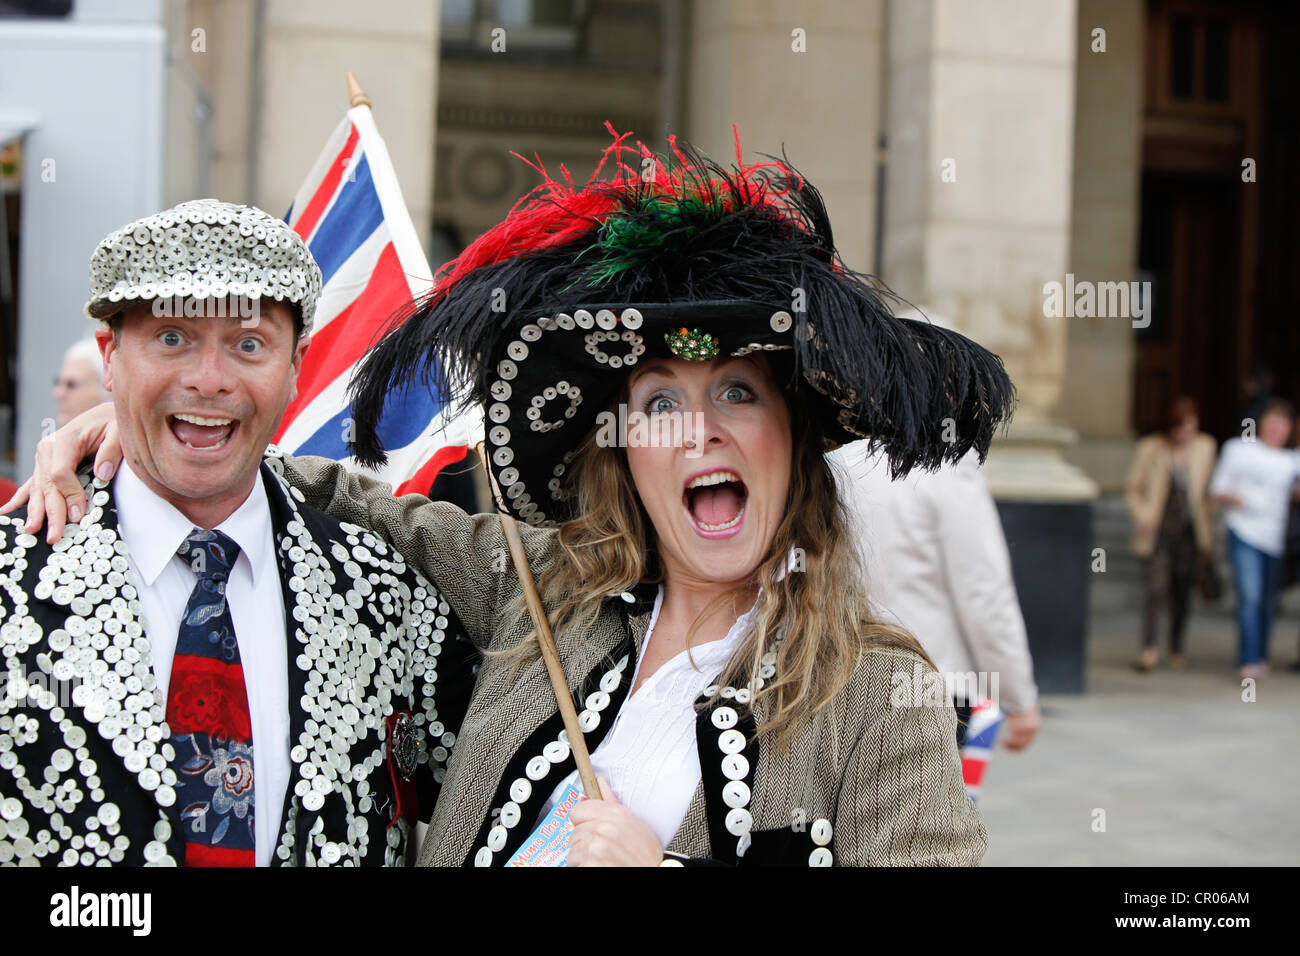 Street entertainers dressed as Pearly King and Queen pose in Birmingham during the Queens Diamond Jubilee celebrations - Stock Image